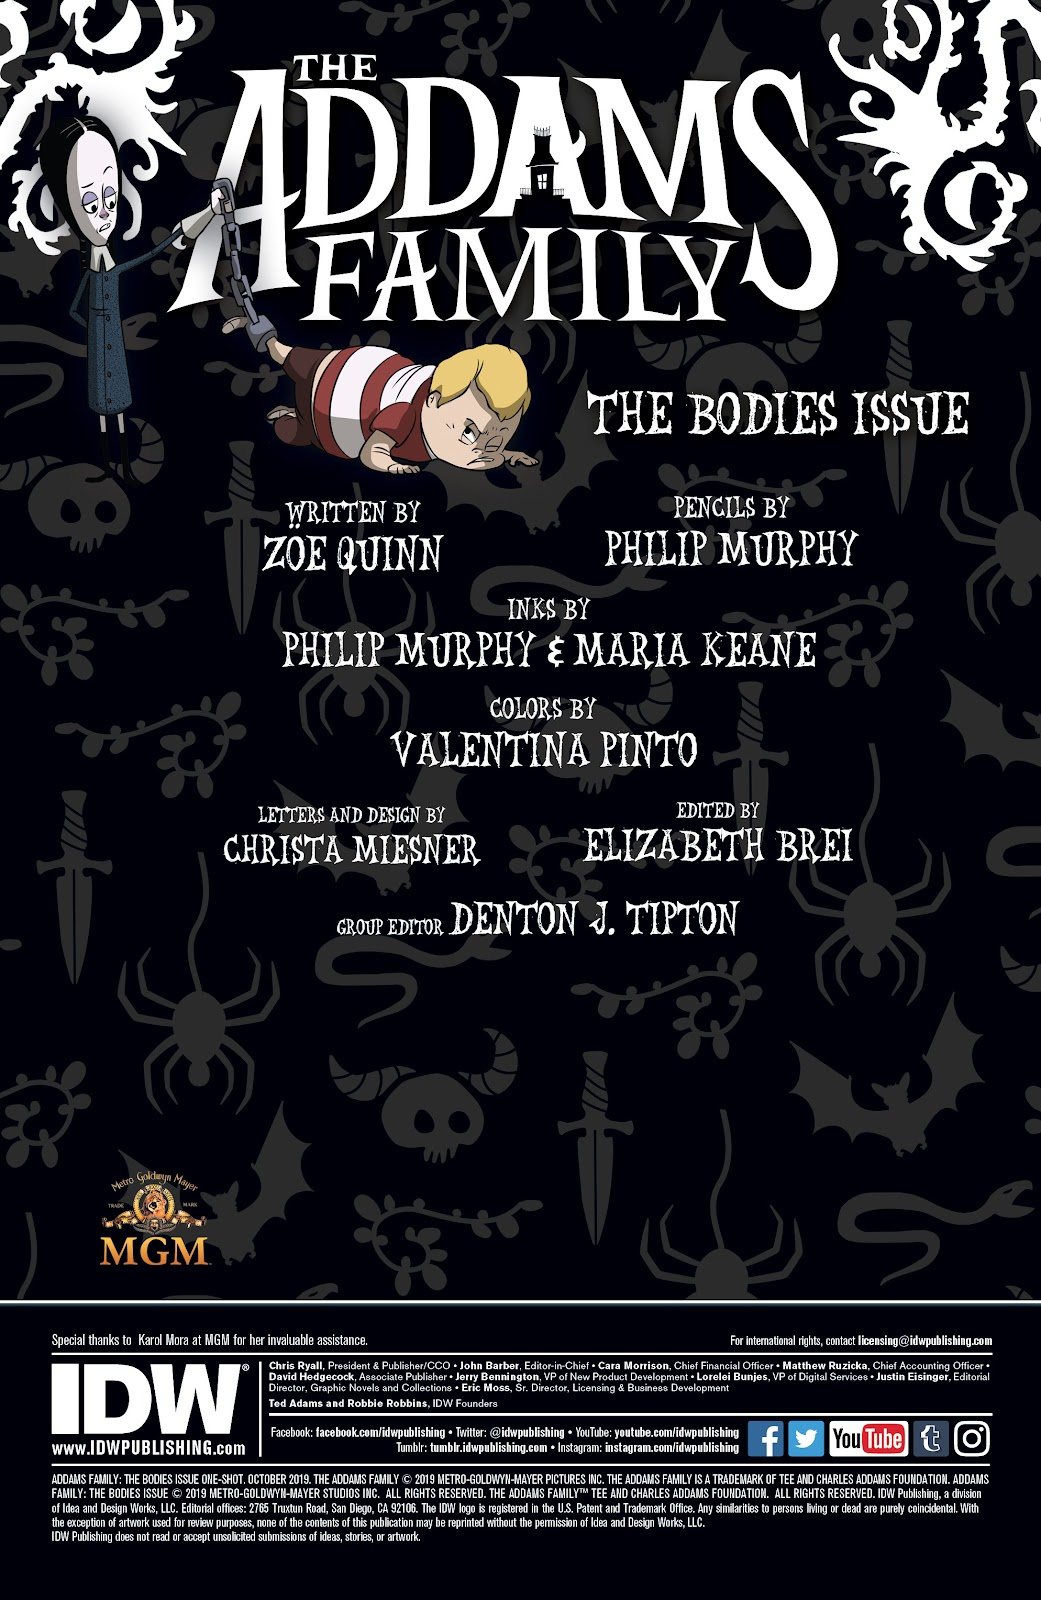 Read online Addams Family: The Bodies Issue comic -  Issue # Full - 2